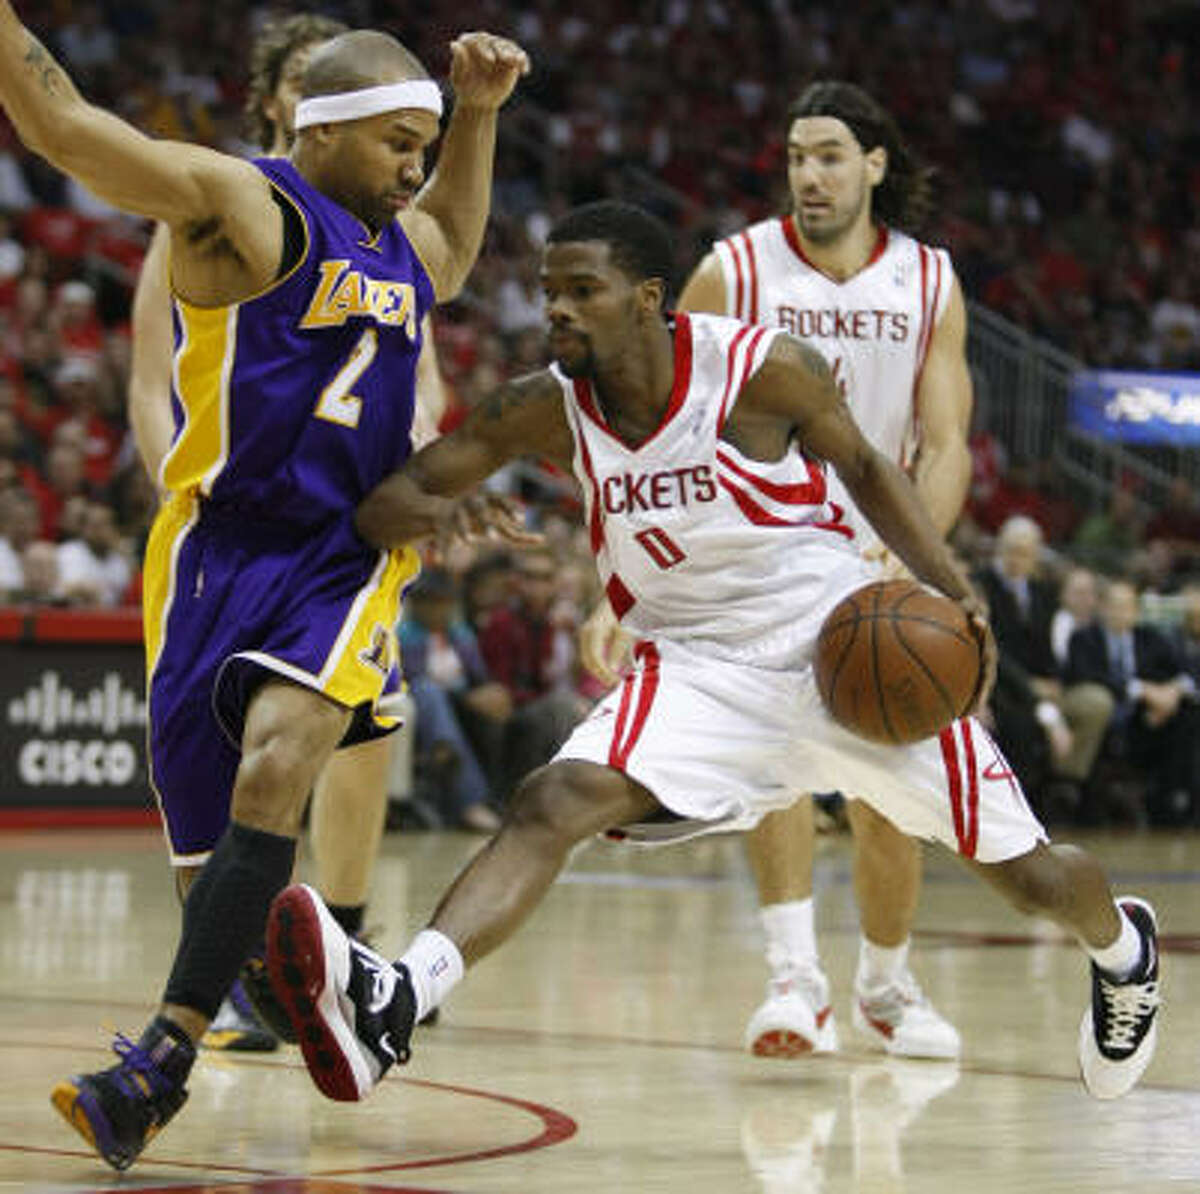 Season: 2008-09 Playoff result: The Rockets defeated the Portland Trail Blazers in six games in their first-round series to advance to the second round for the first time since 1997. Houston will play the Los Angeles Lakers in Game 7 Sunday for the right to face the Denver Nuggets in the Western Conference finals.